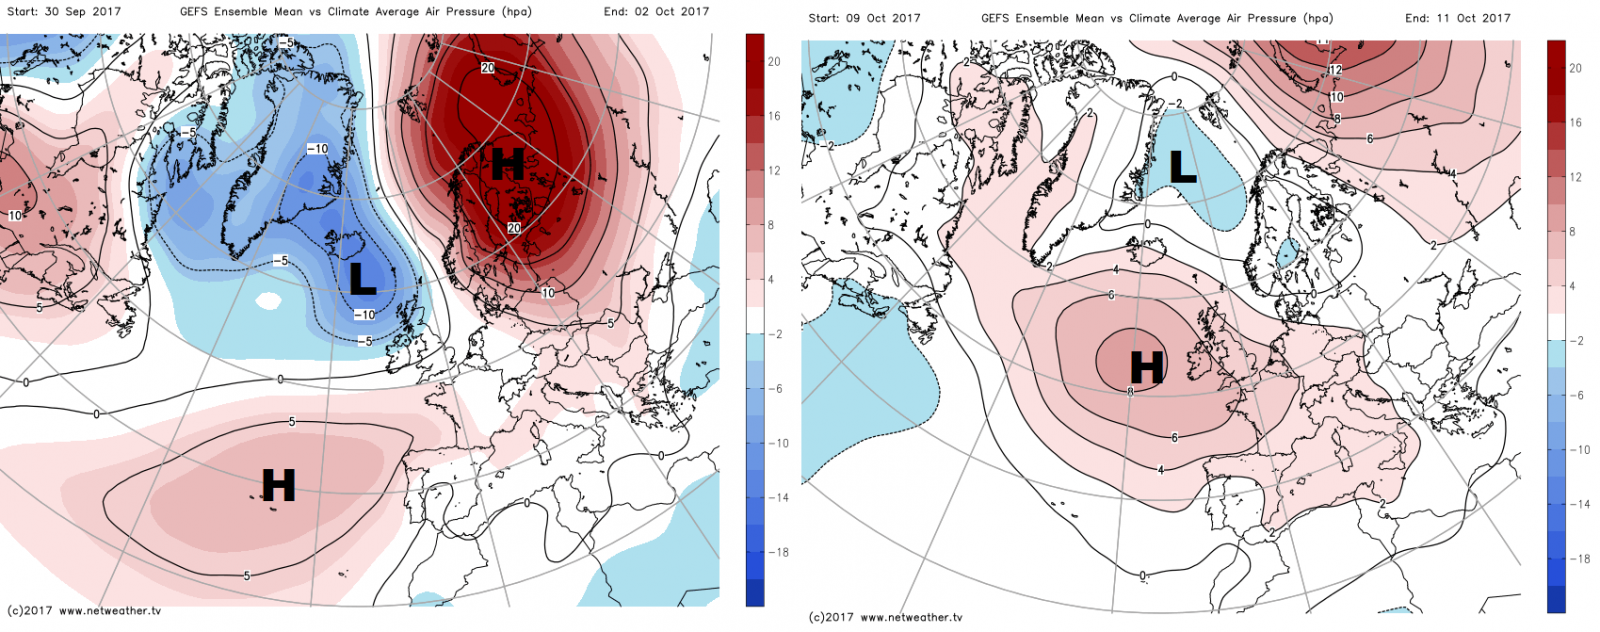 synoptic guidance - a cyclonic outlook into october